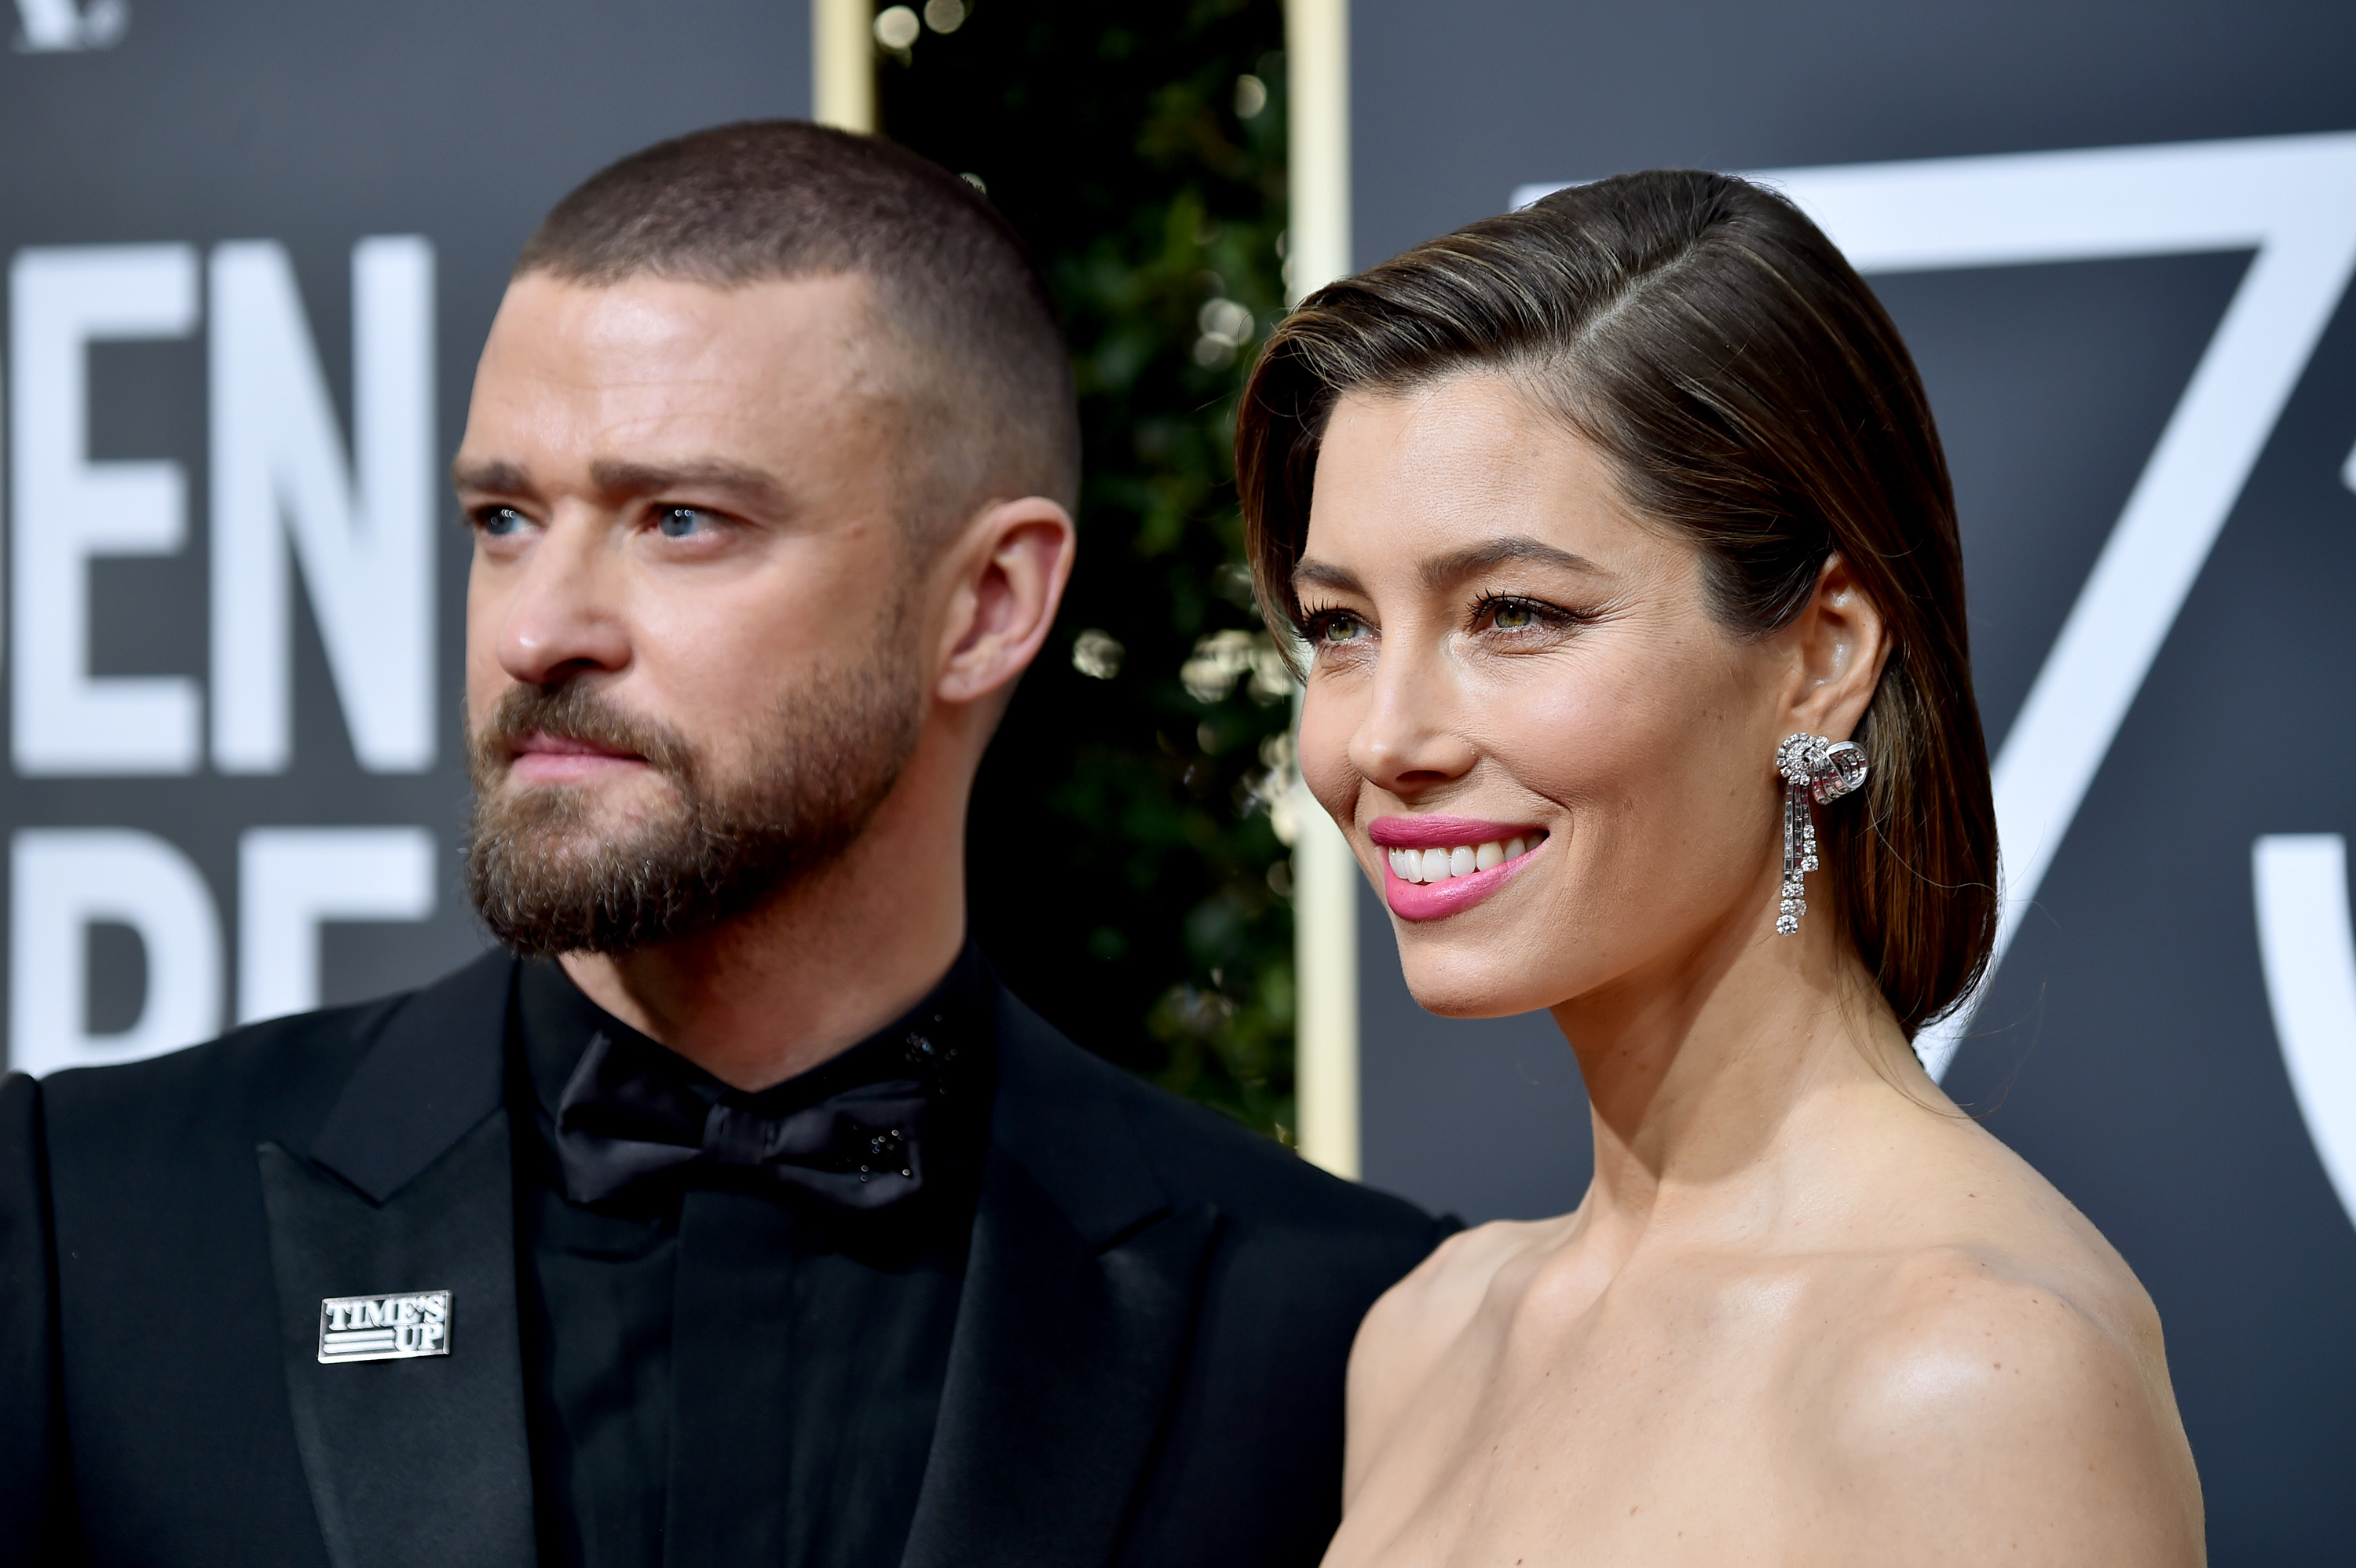 Justin Timberlake has publicly apologised to Jessica Biel over the photos of him and his co-star